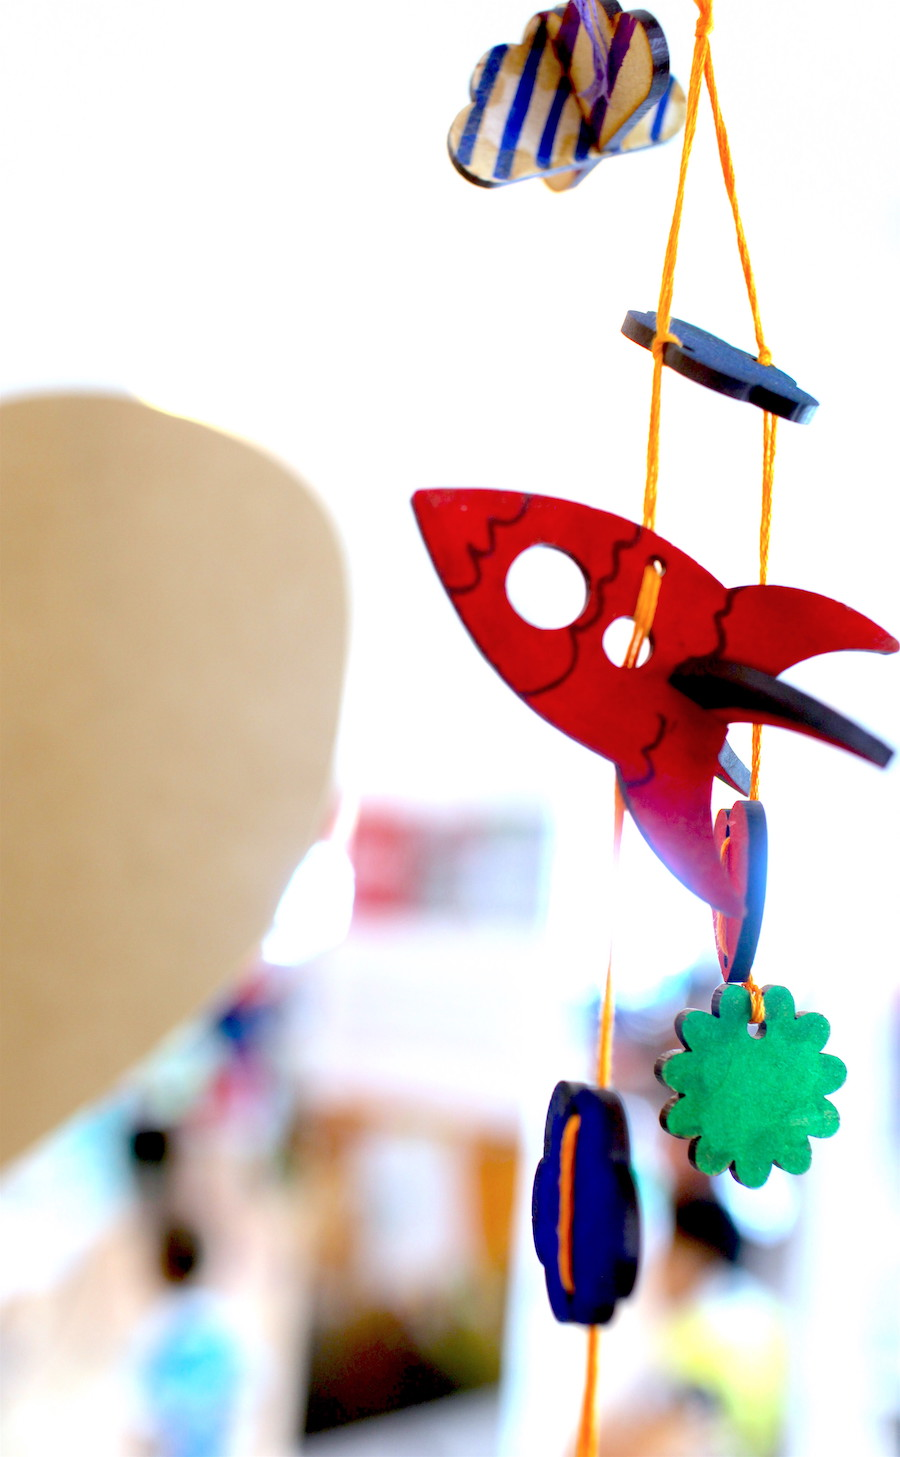 FabKids! Make Your Own: Rocket Universe (27 Nov)